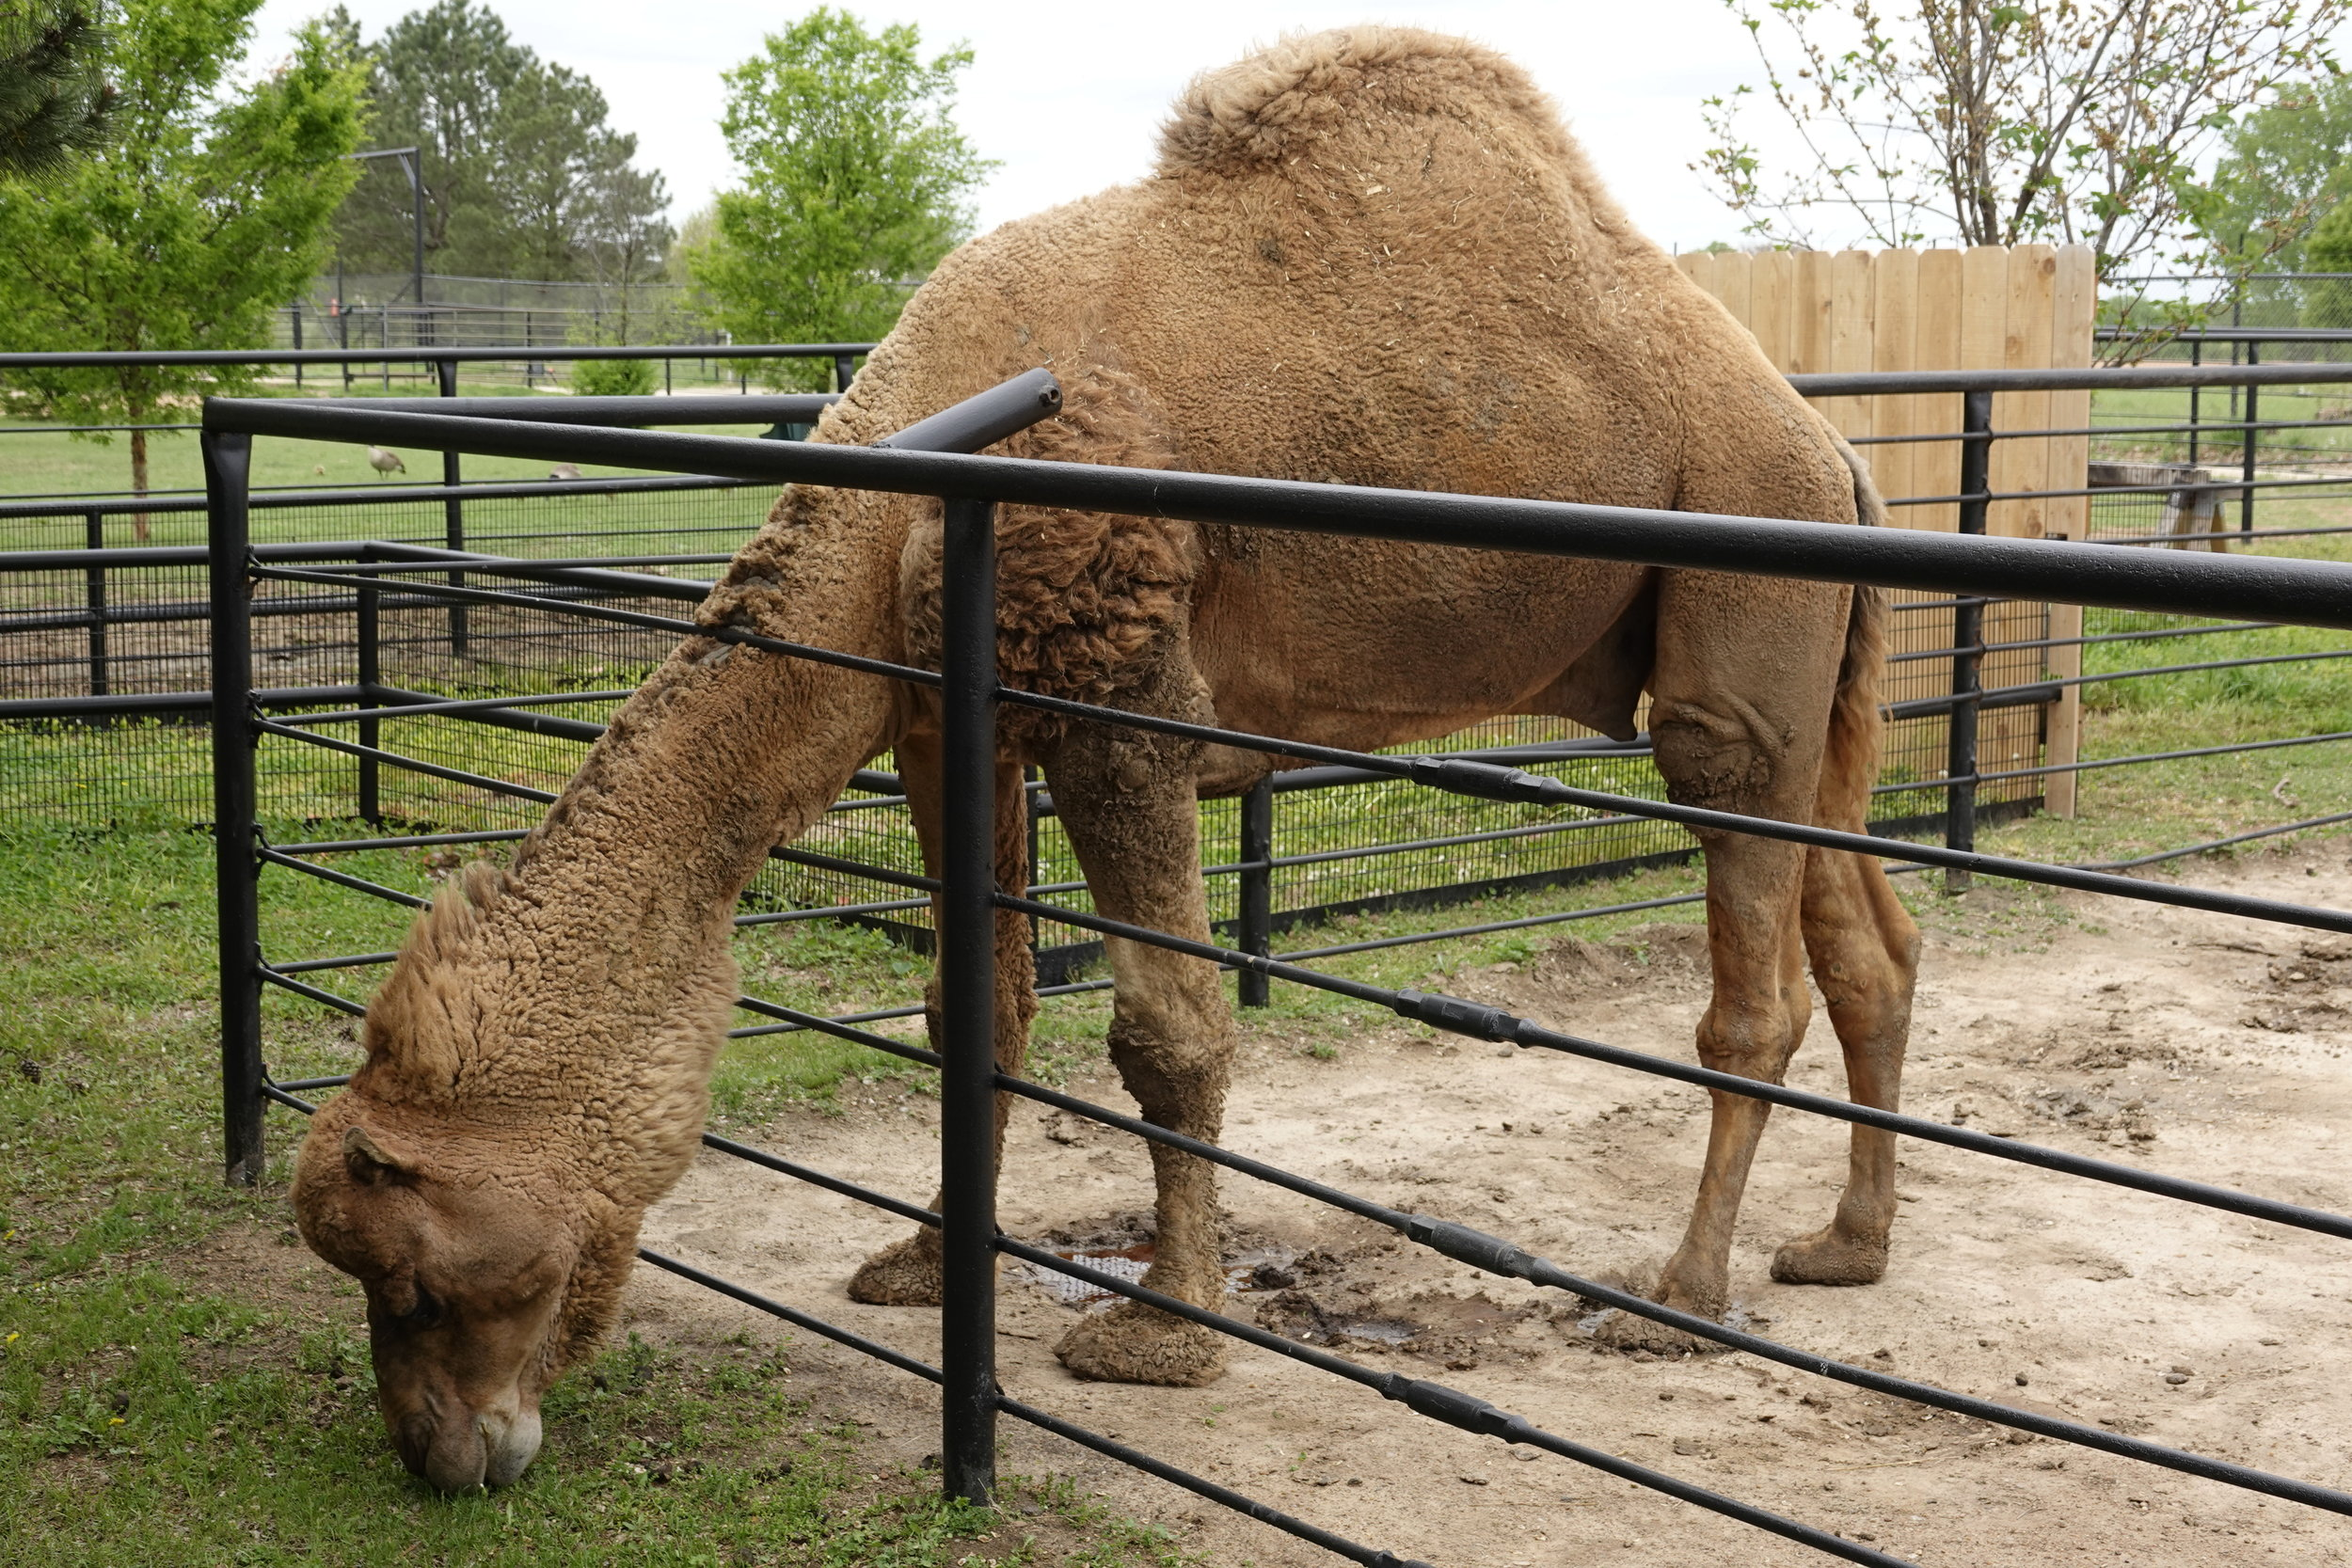 When you're a camel, every day is hump day.